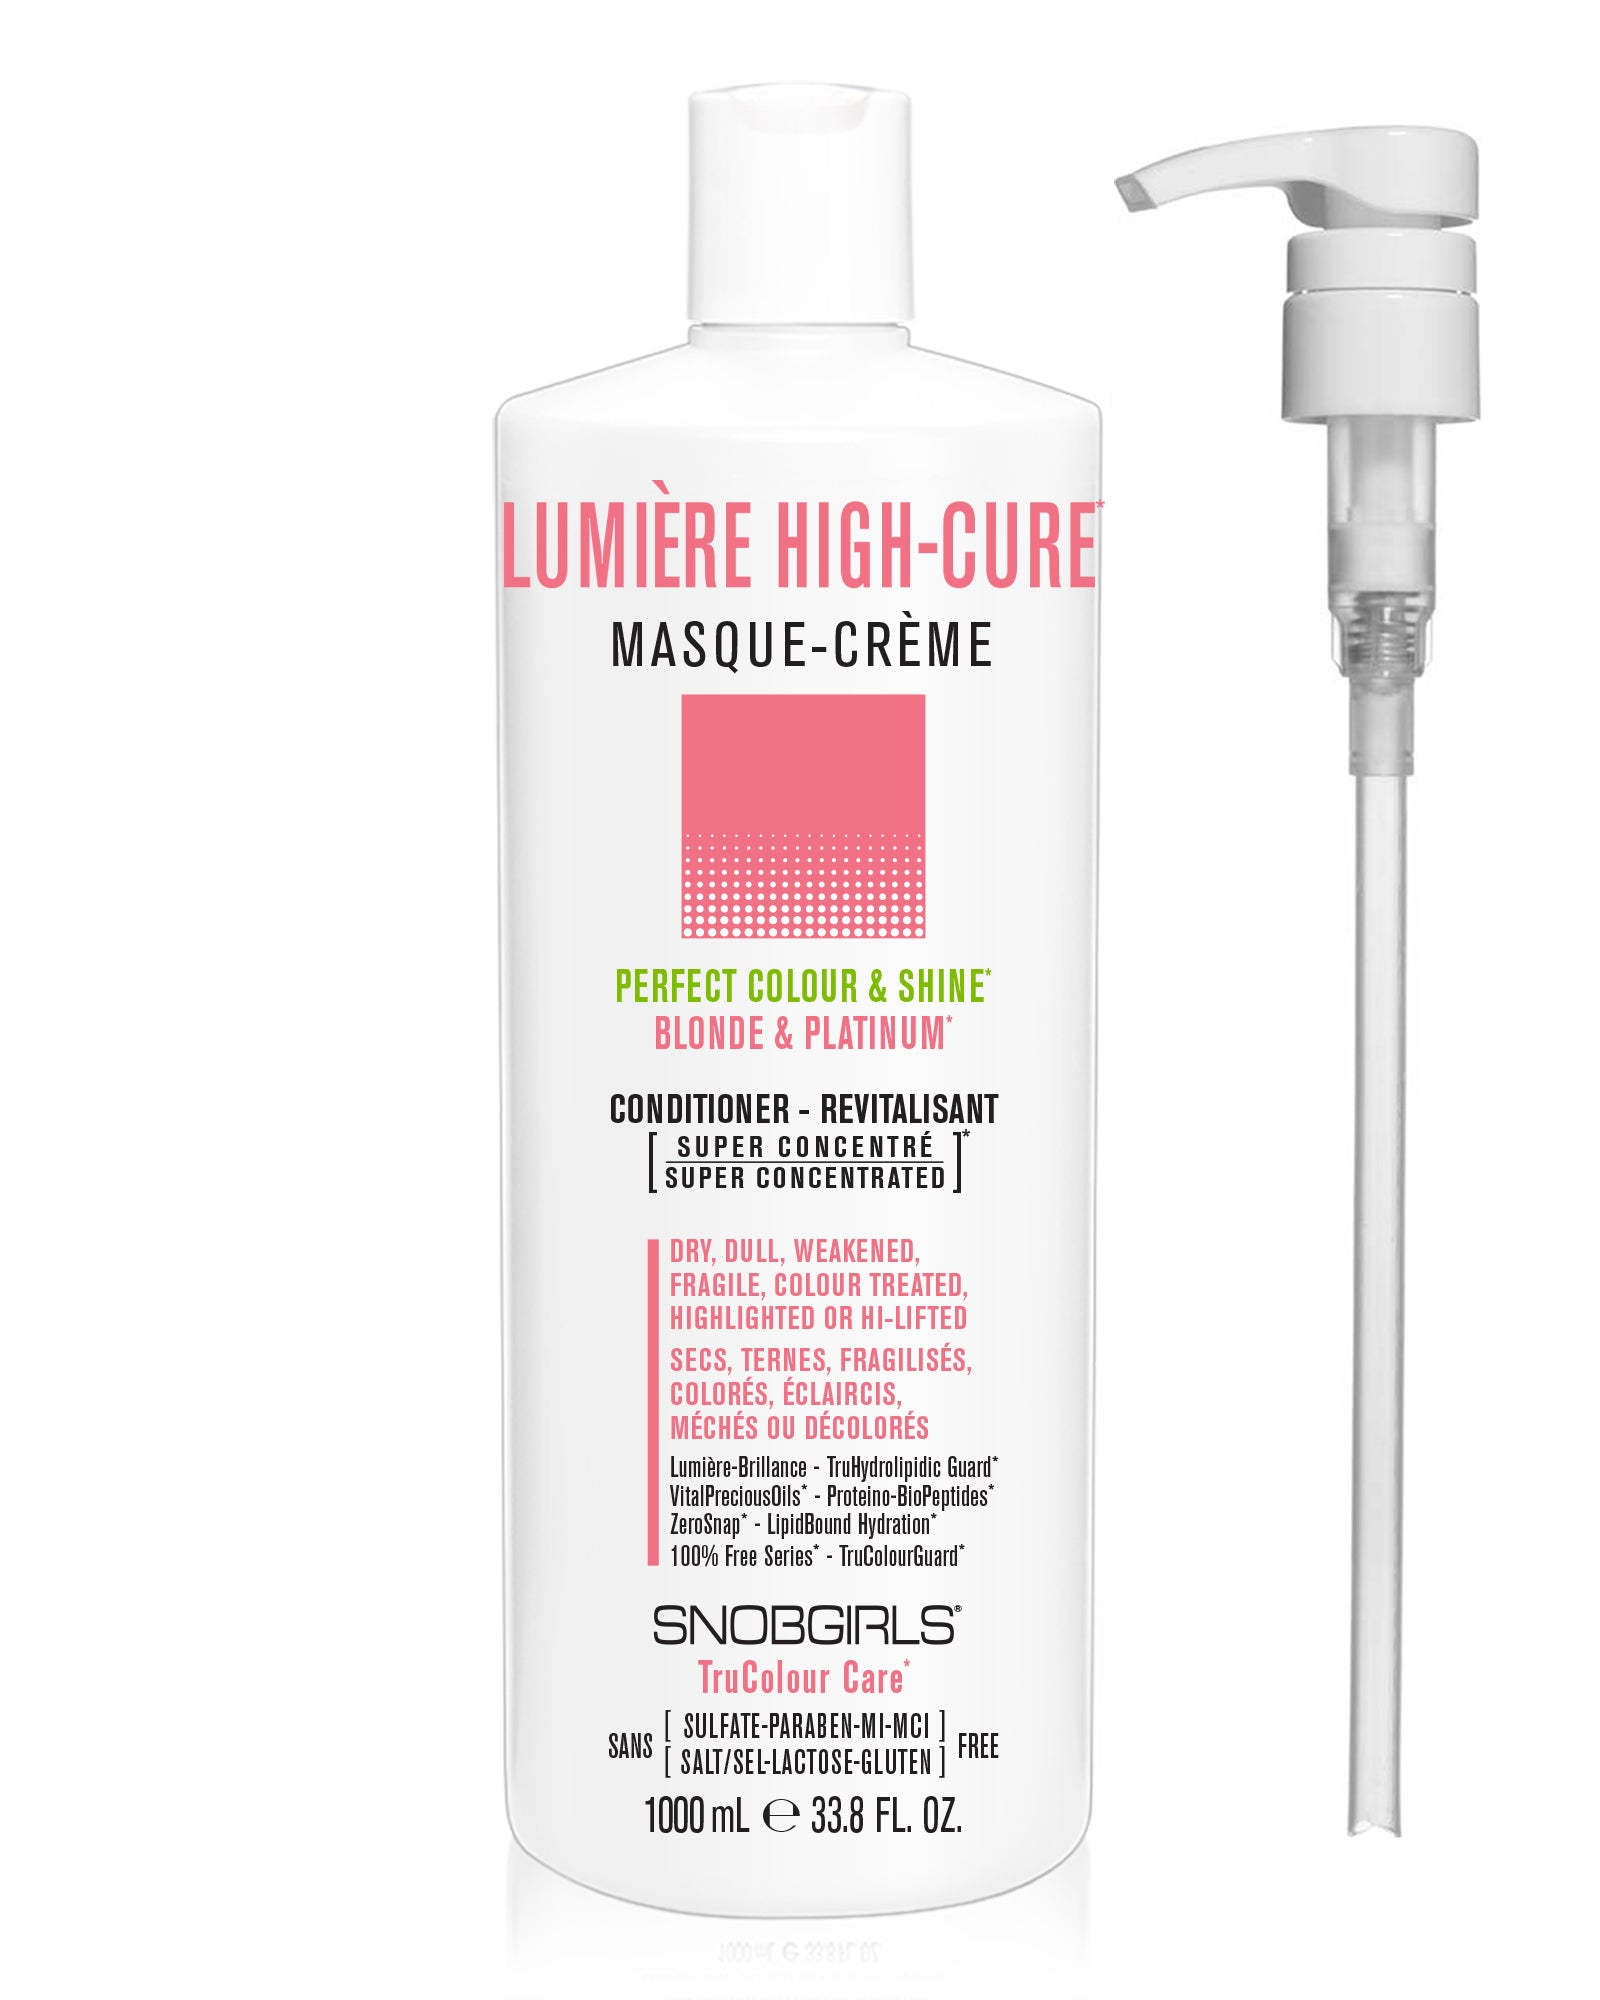 LUMIERE HIGH-CURE Perfect Colour & Shine Masque-Creme (conditioner) - SNOBGIRLS Canada